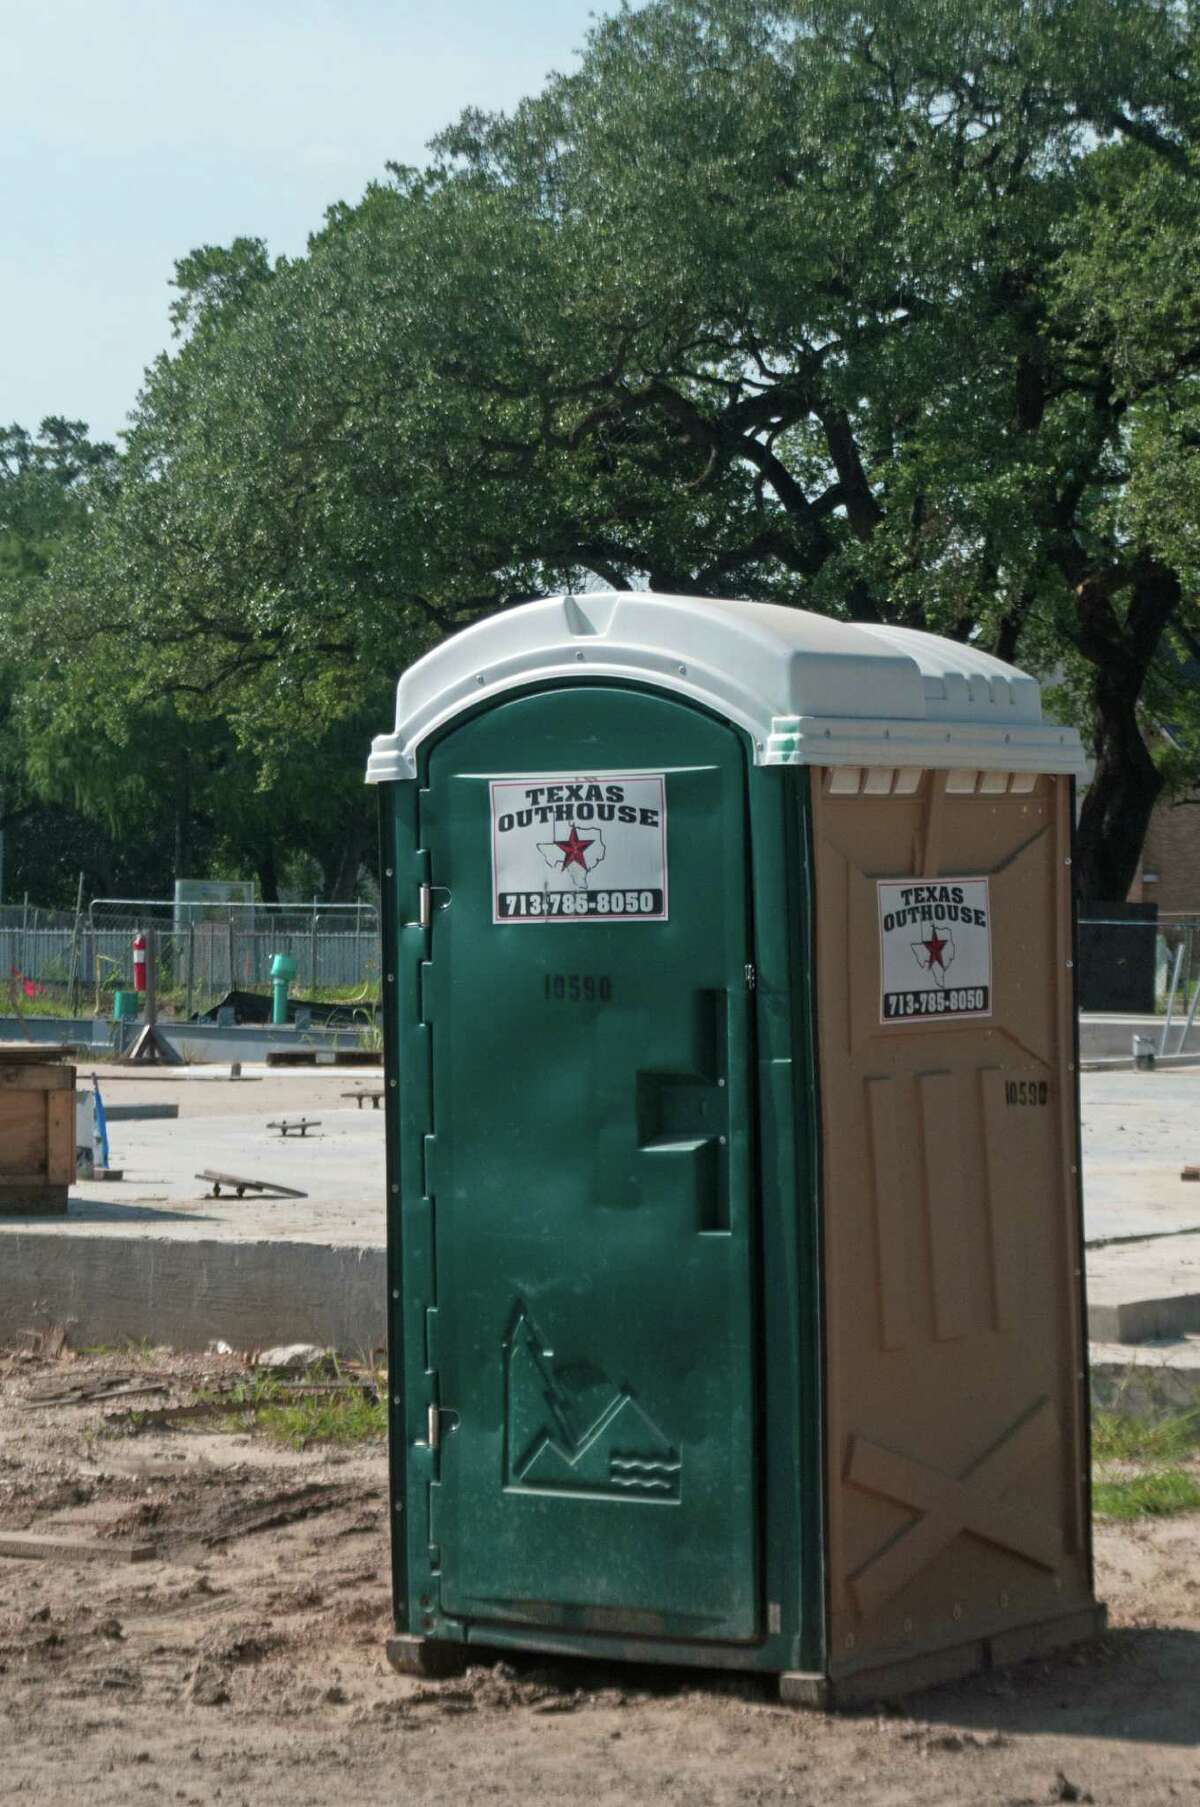 A Texas Outhouse portable toilet sports its trademarked logo of the outline of Texas and a lone star.